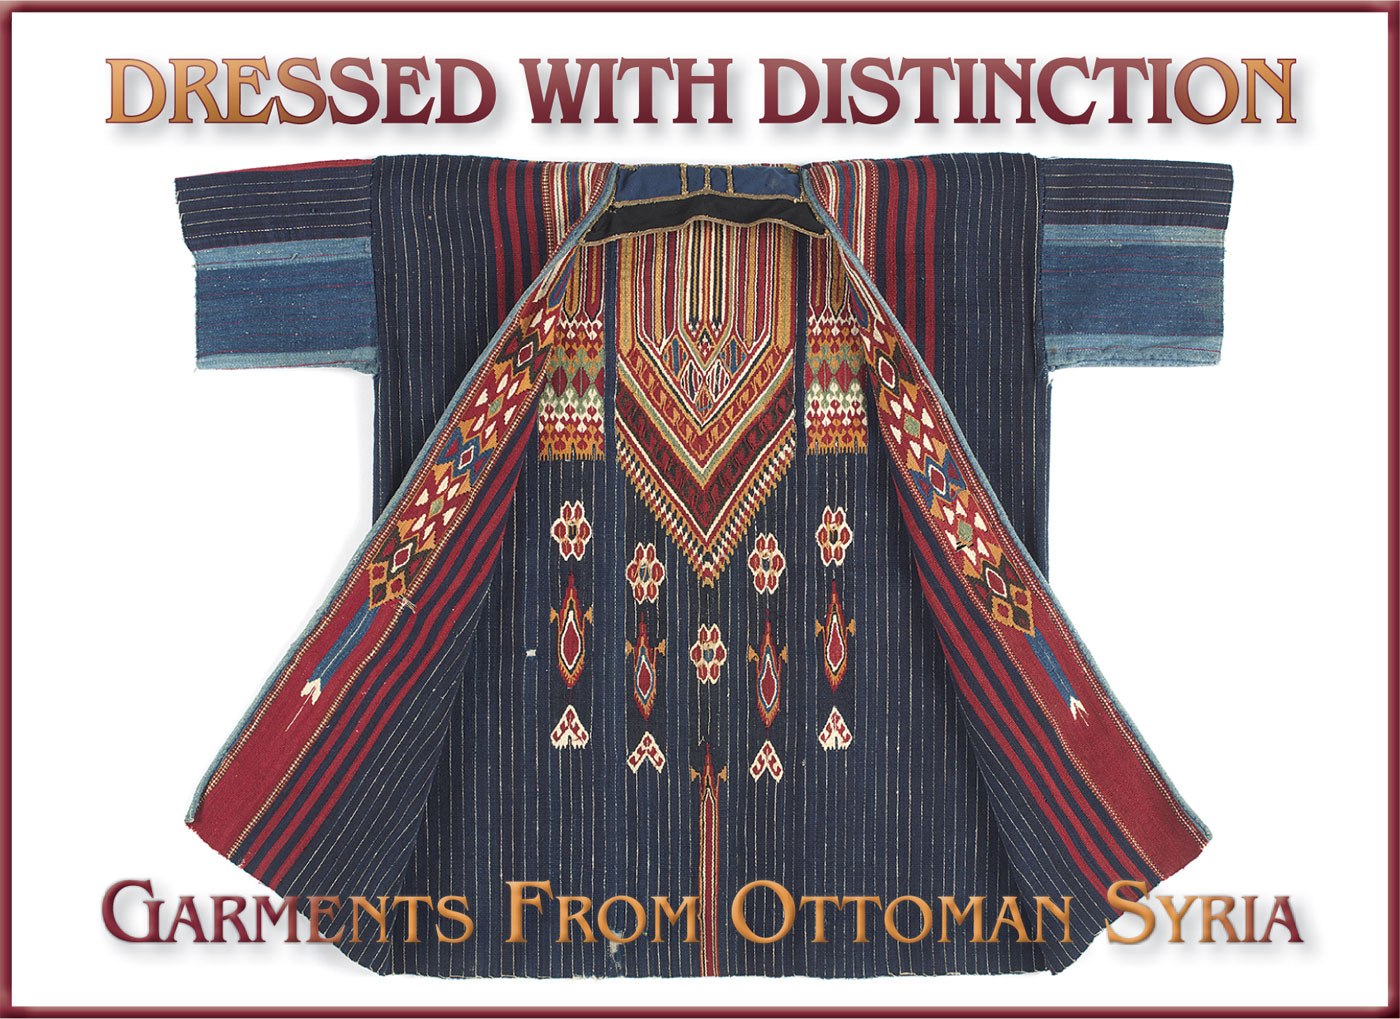 MAN'S COAT ( damir ) of wool, cotton, metallic thread, weft-faced weave, slit tapestry technique, handsewn, Bedouin peoples, Damascus, Ottoman Syria, late nineteenth to early twentieth century.  Photographs courtesy of the Fowler Museum at UCLA.